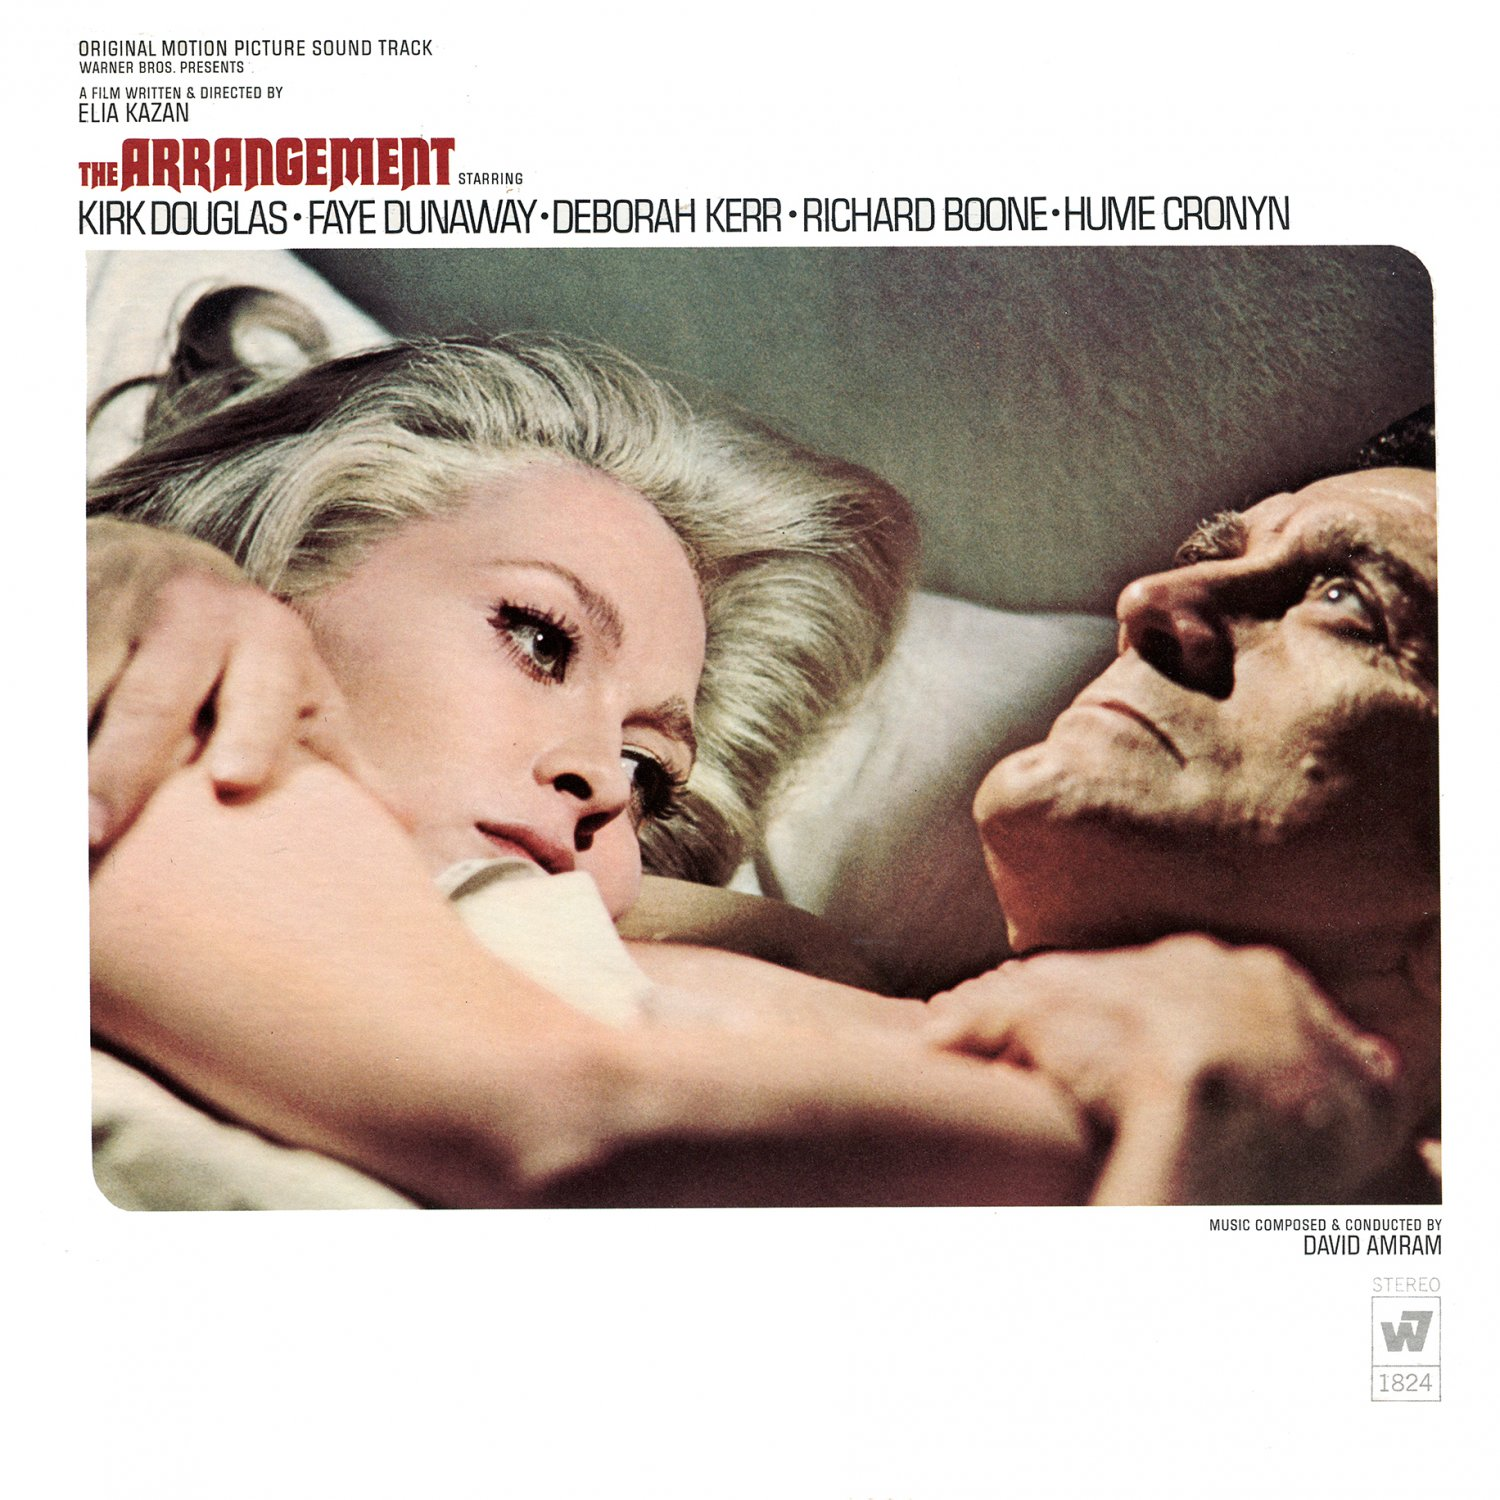 The Arrangement - Original Soundtrack, David Amram OST LP/CD